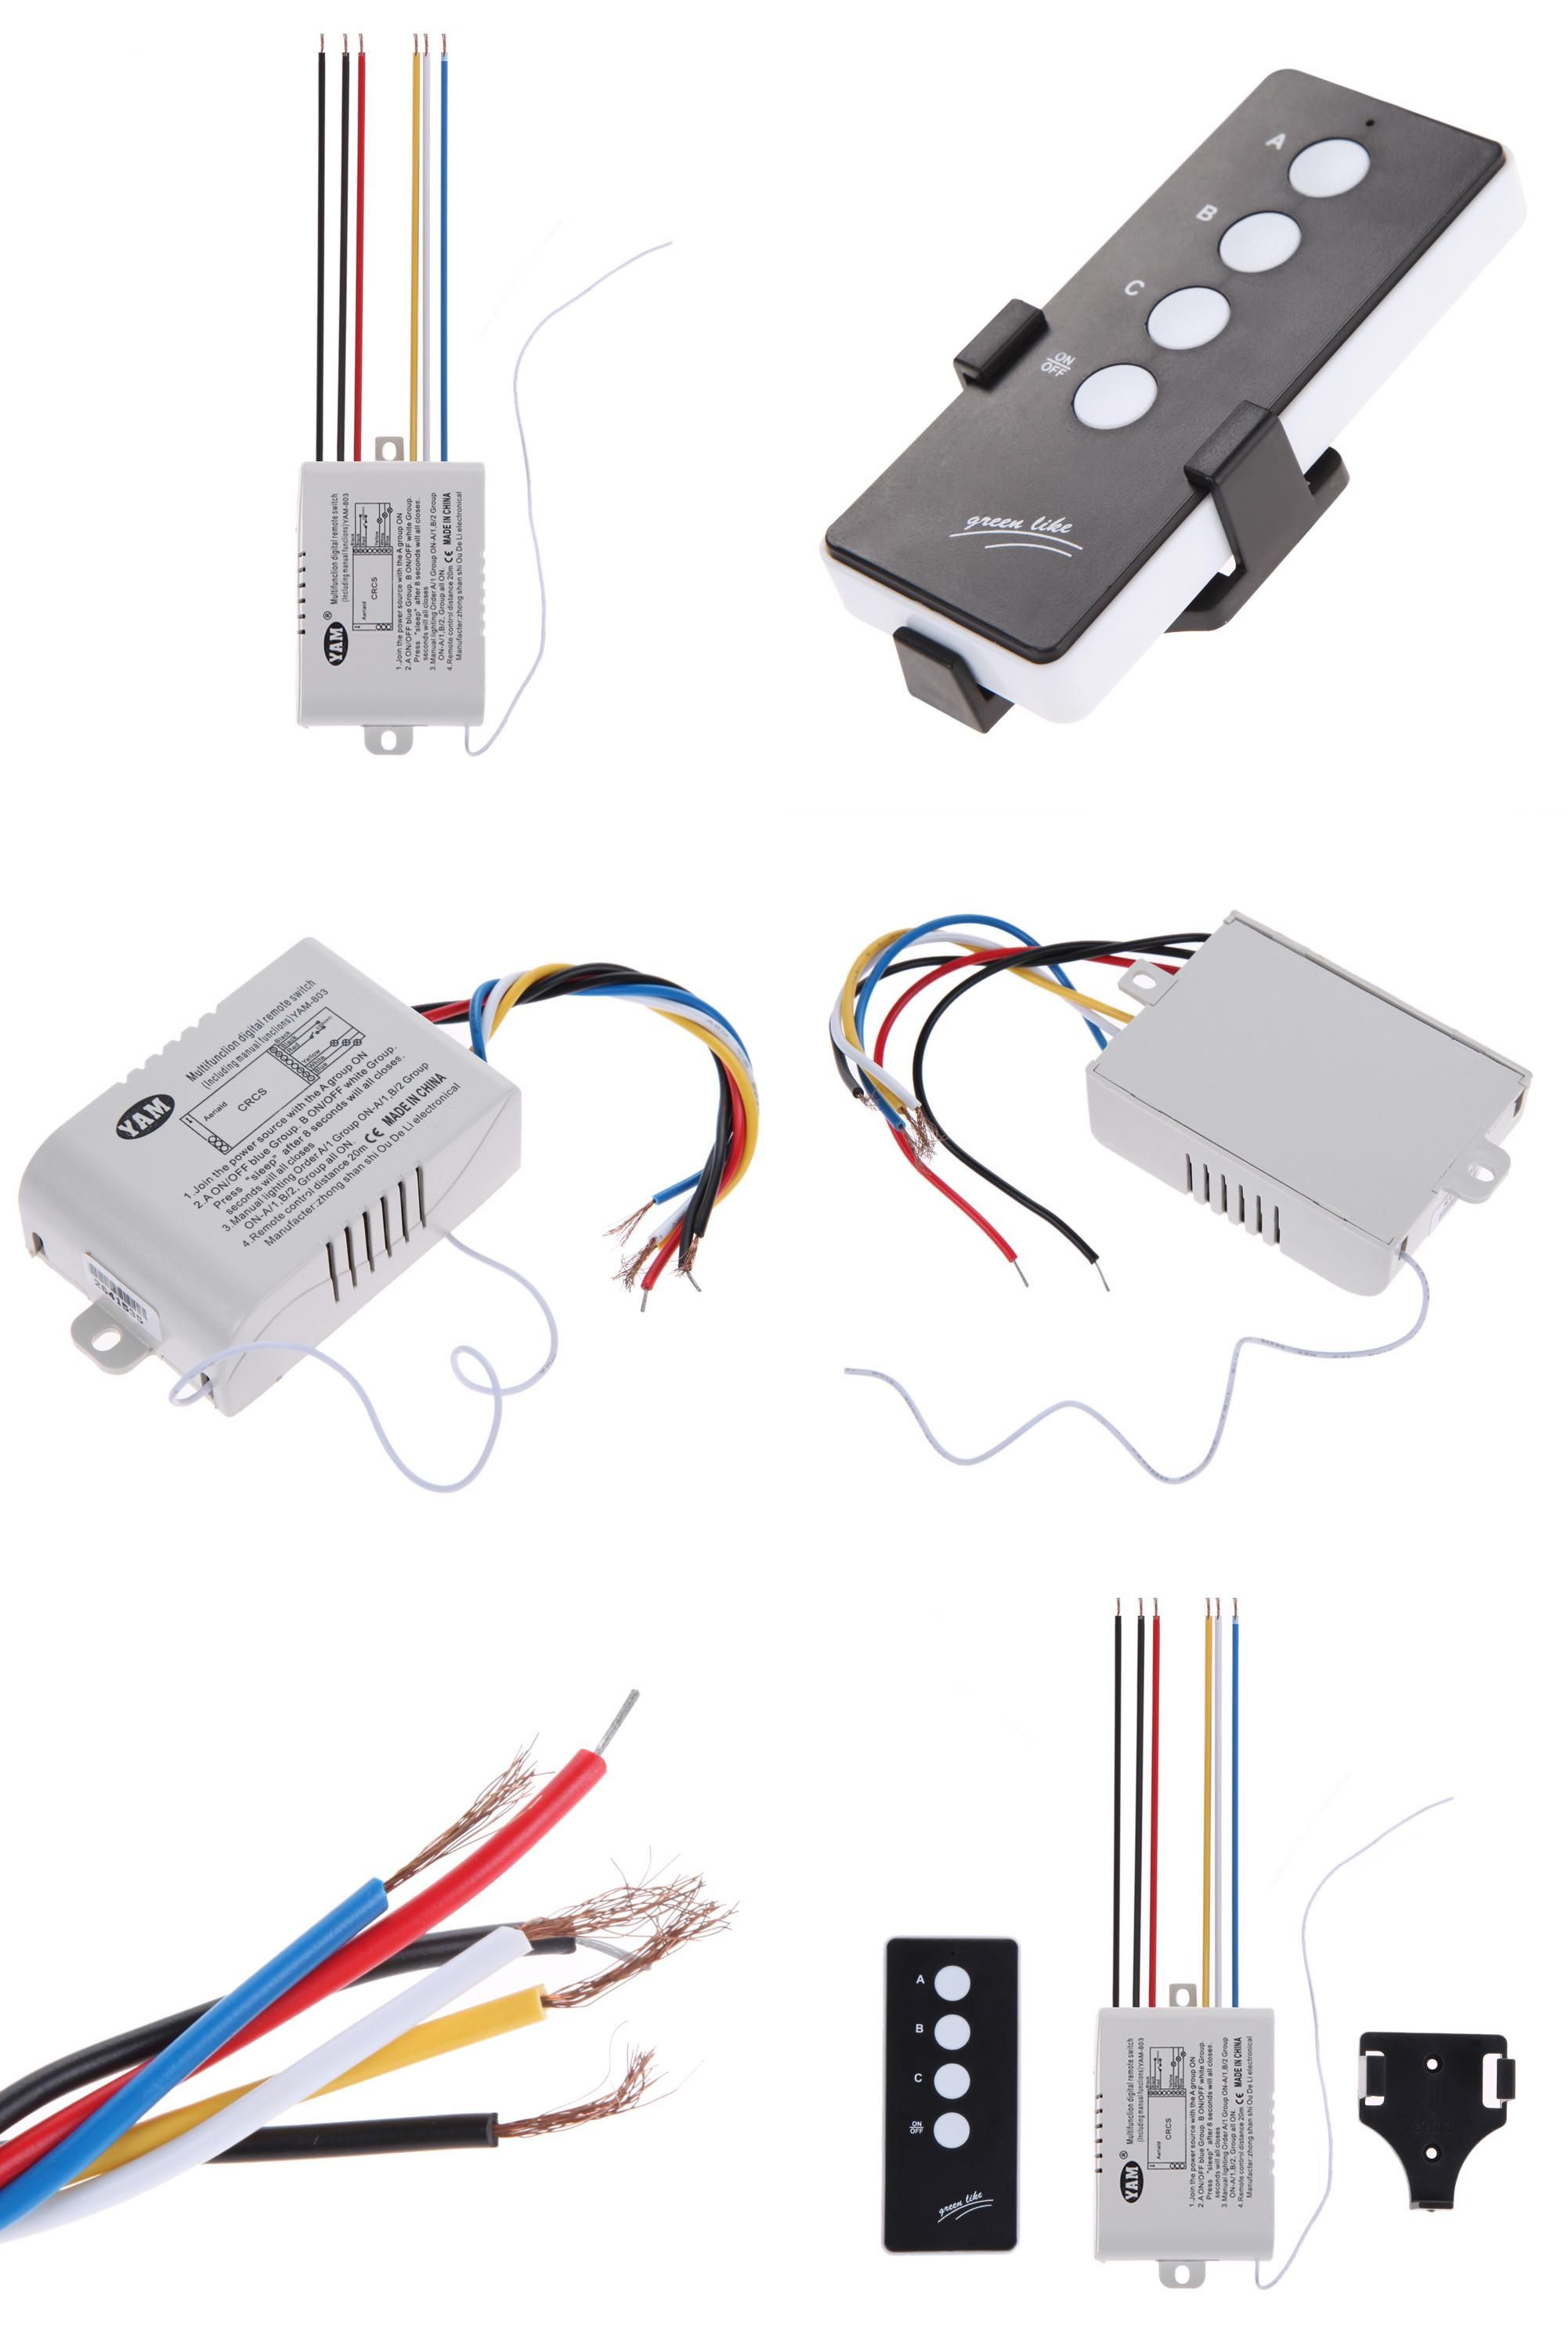 Visit To Buy 3 Way Port On Off 220v 3000w Lamp Led Light Digital How Wire A Switch Plug Outlet Wireless Remote